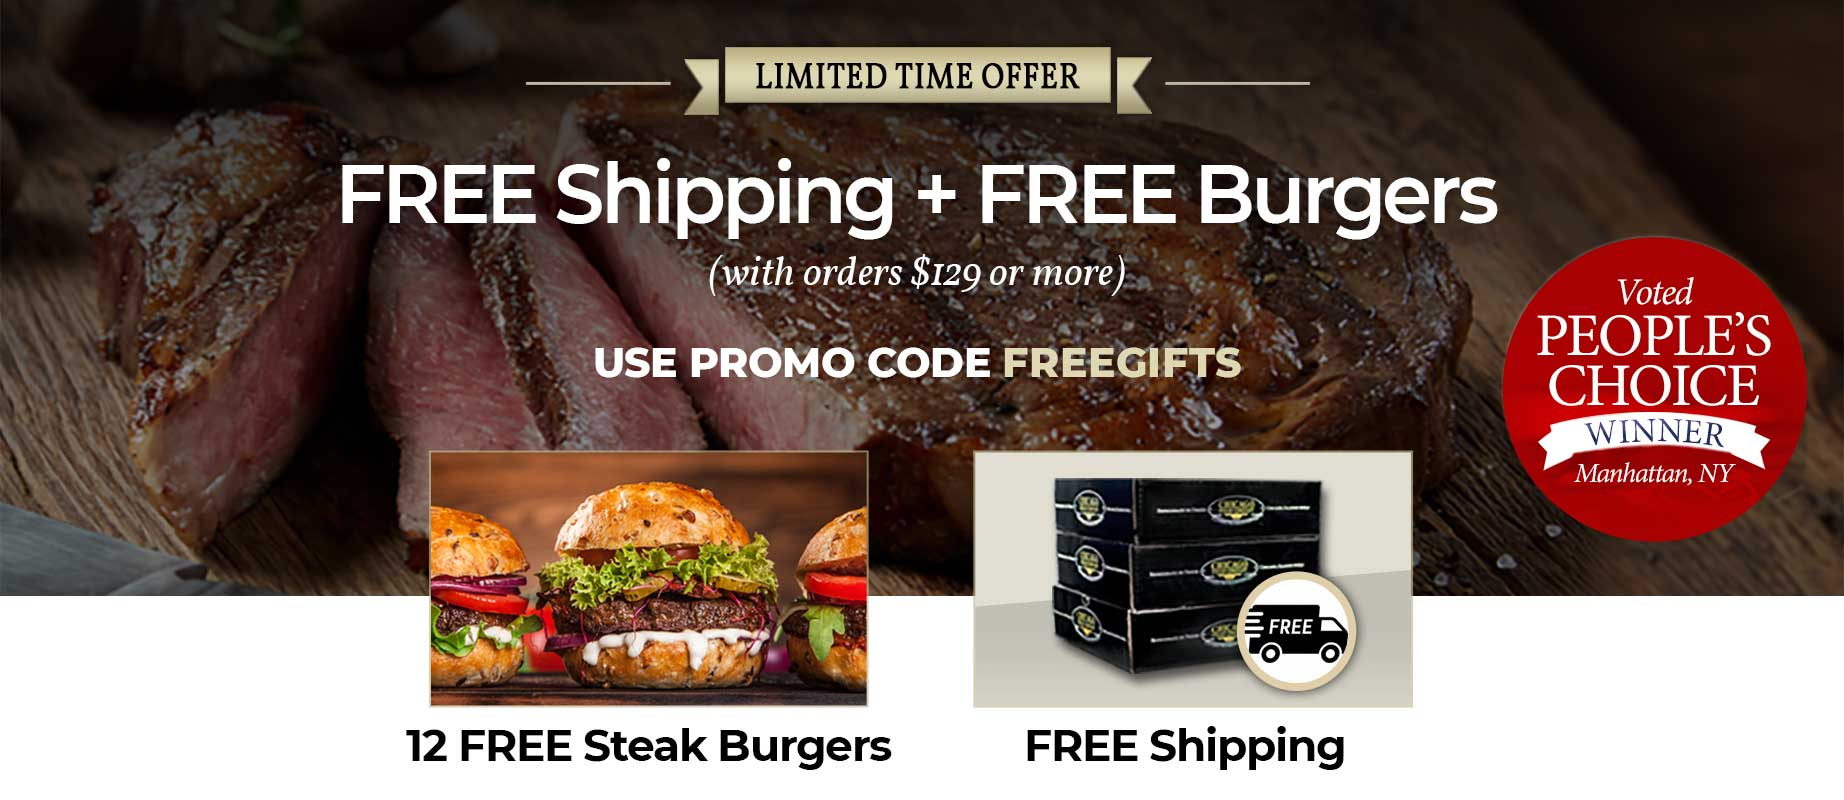 Exclusive Limited Time Offer -Free Shipping and 12 free burgers on orders $129+  Use Promo Code FREEGIFTS